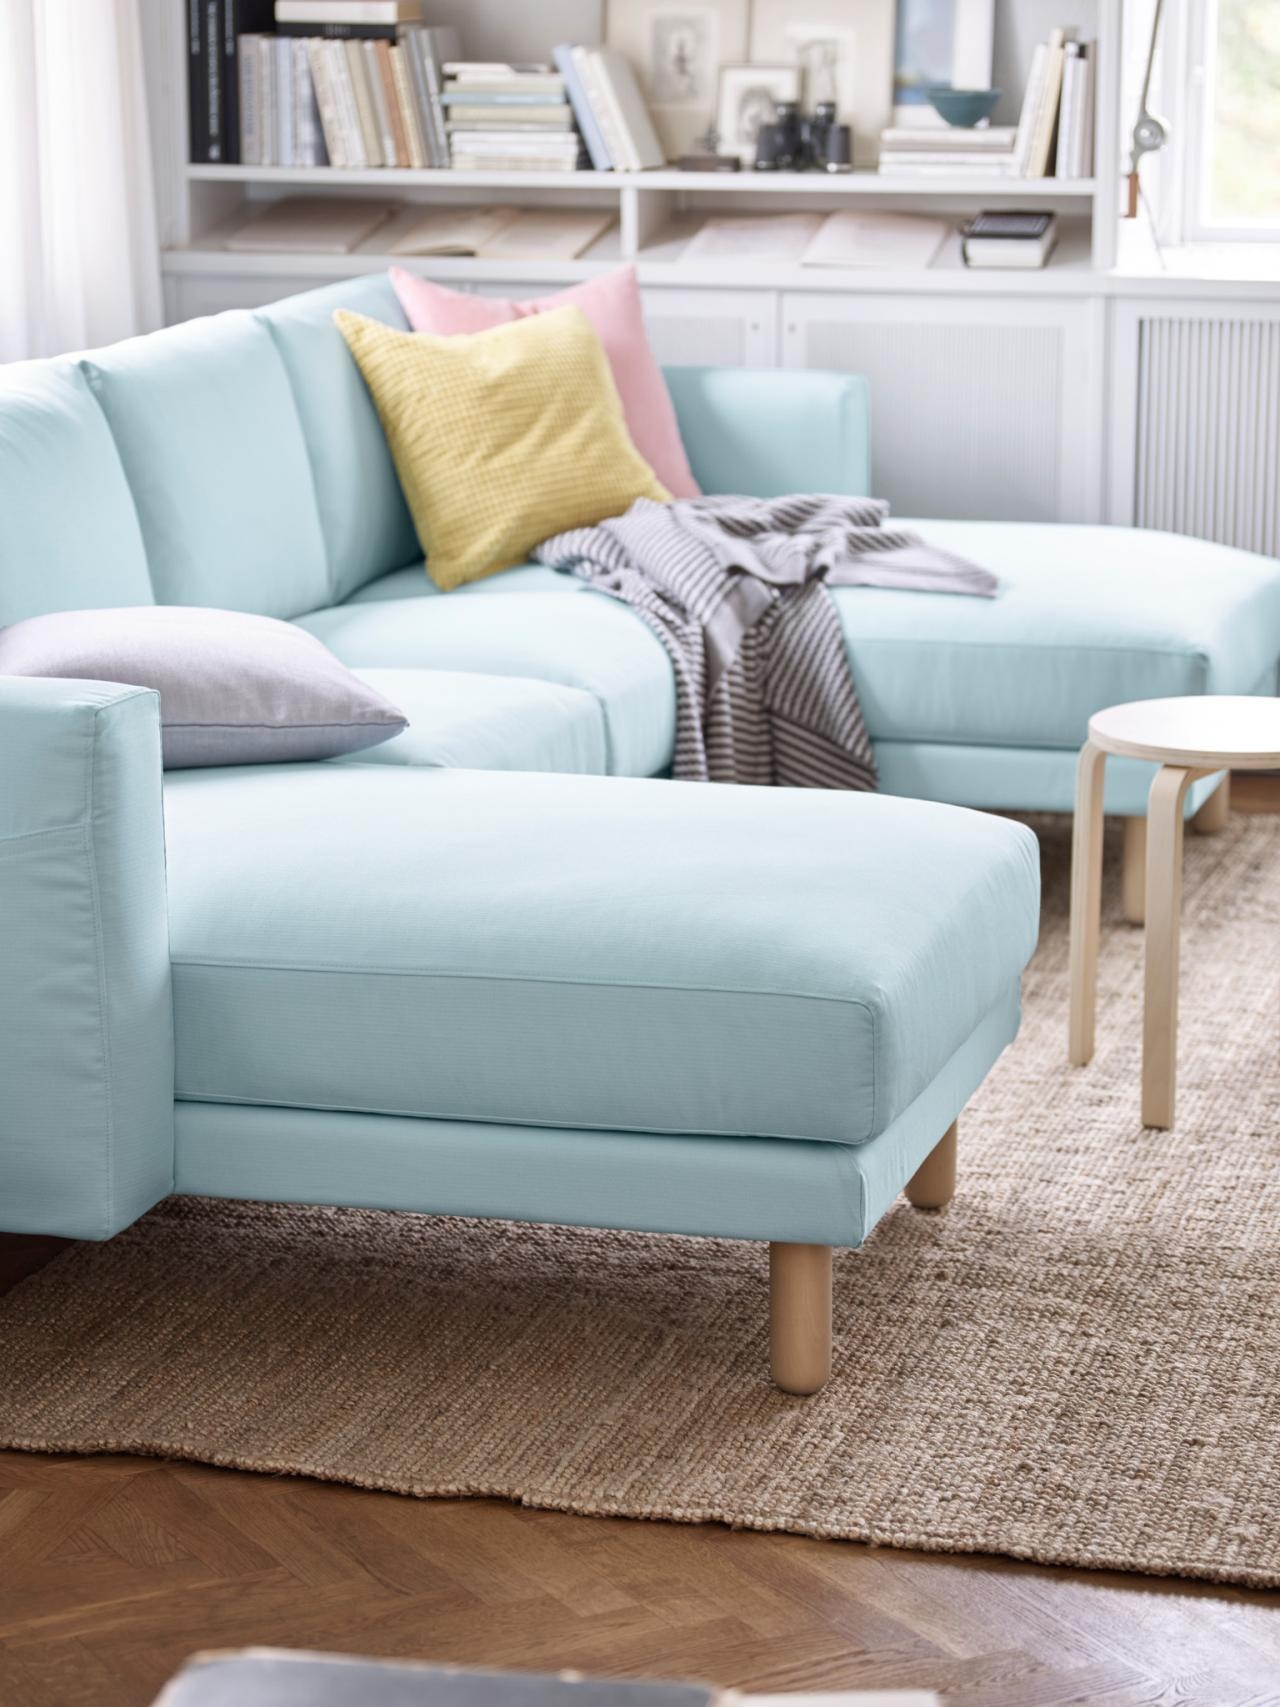 5 Apartment Sized Sofas That Are Lifesavers | Hgtv's Decorating Within Sectionals For Apartments (Image 1 of 20)